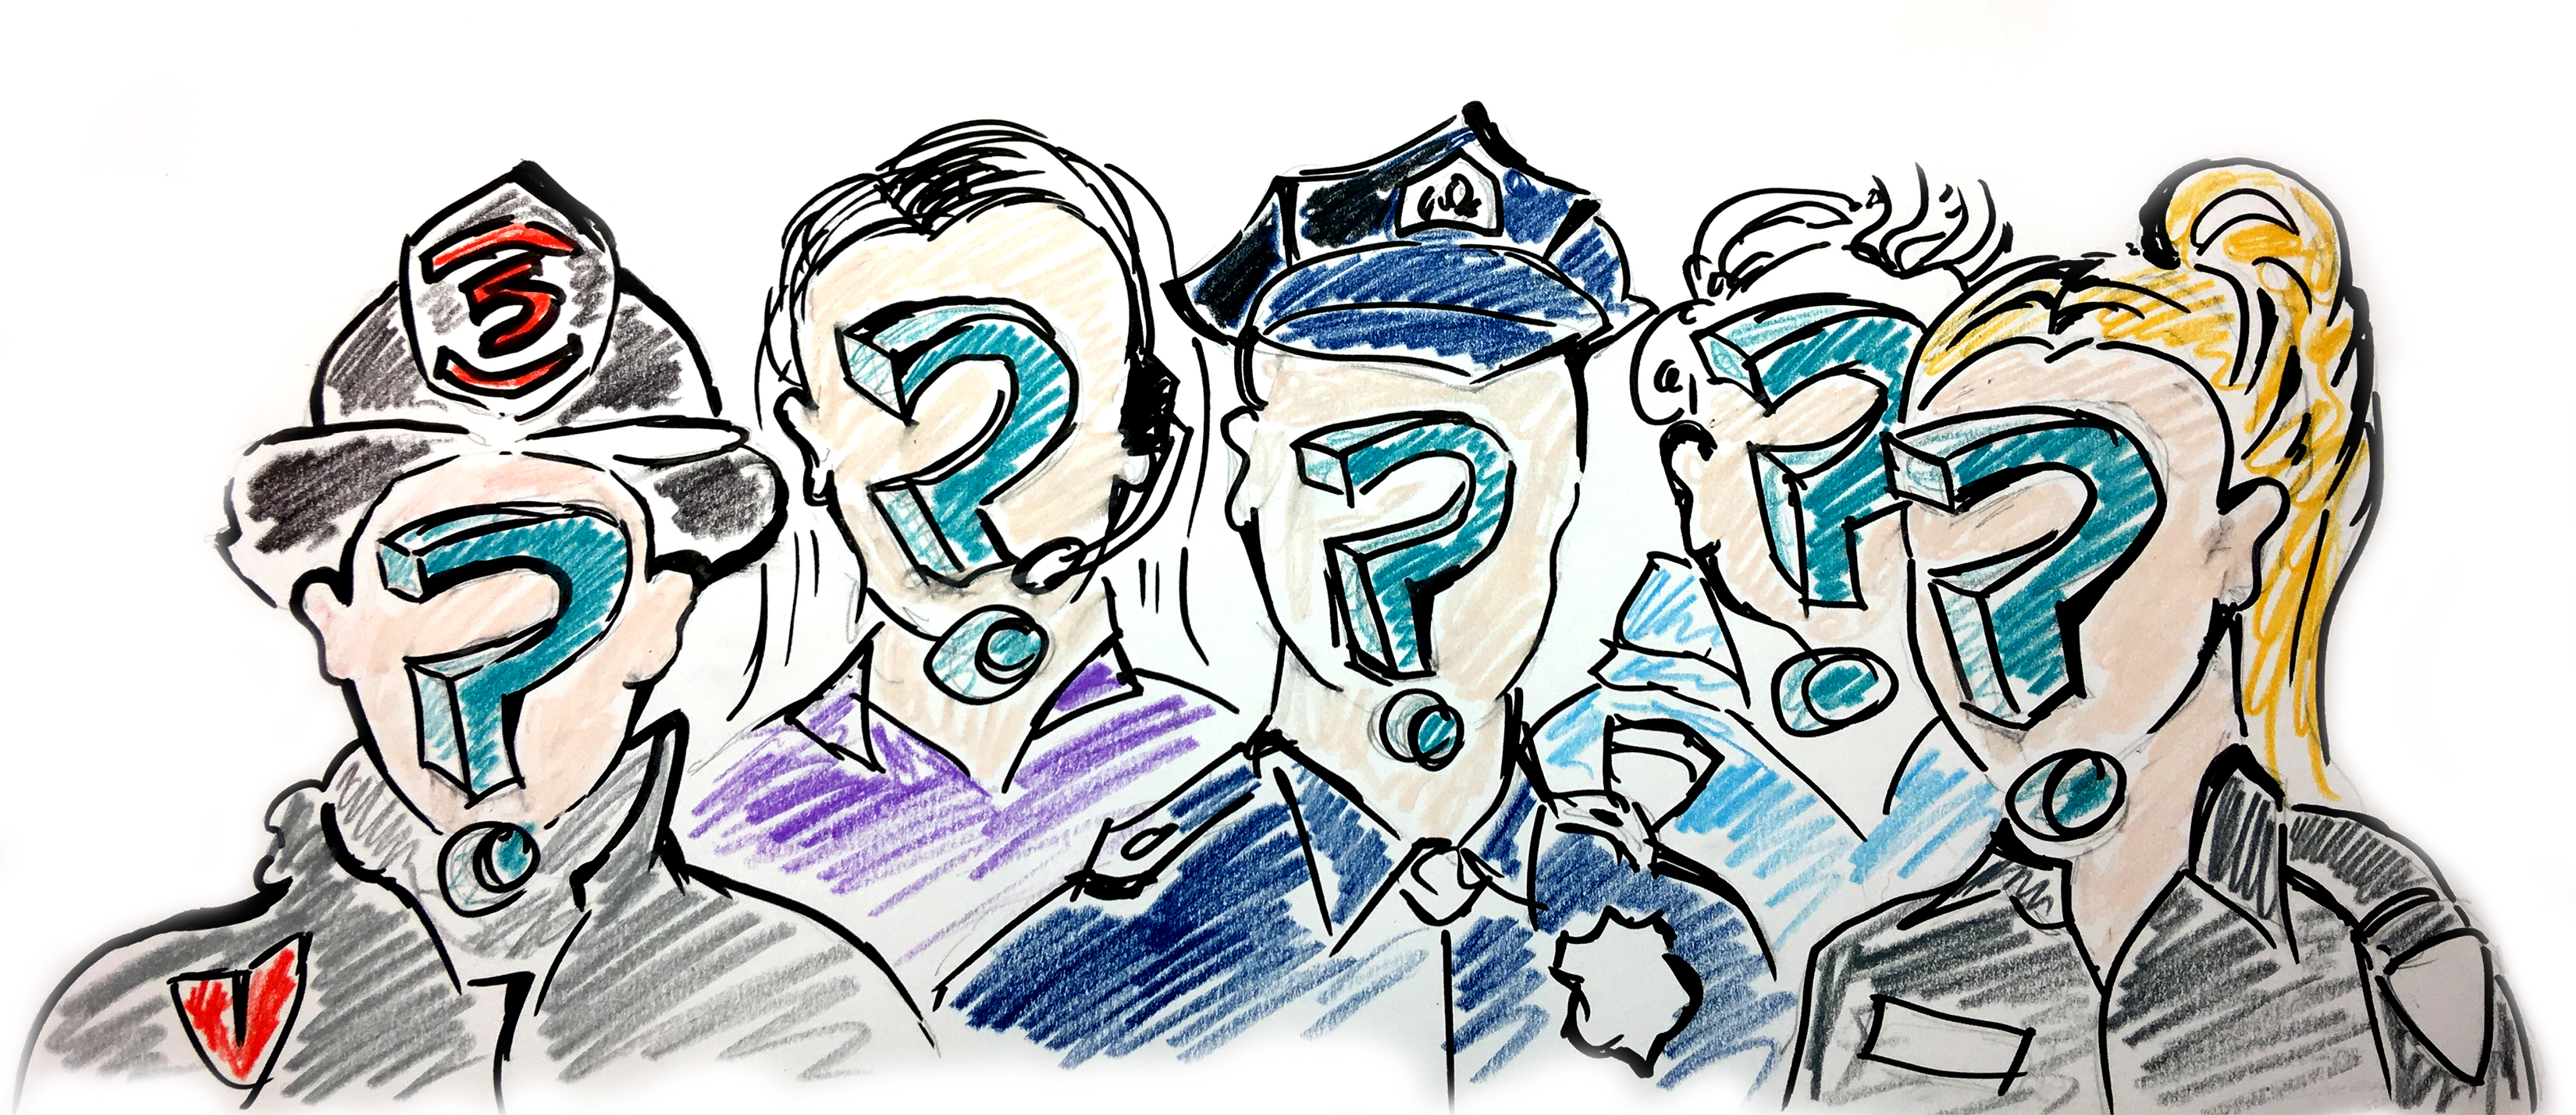 The 5 questions every leader serving public safety must answer